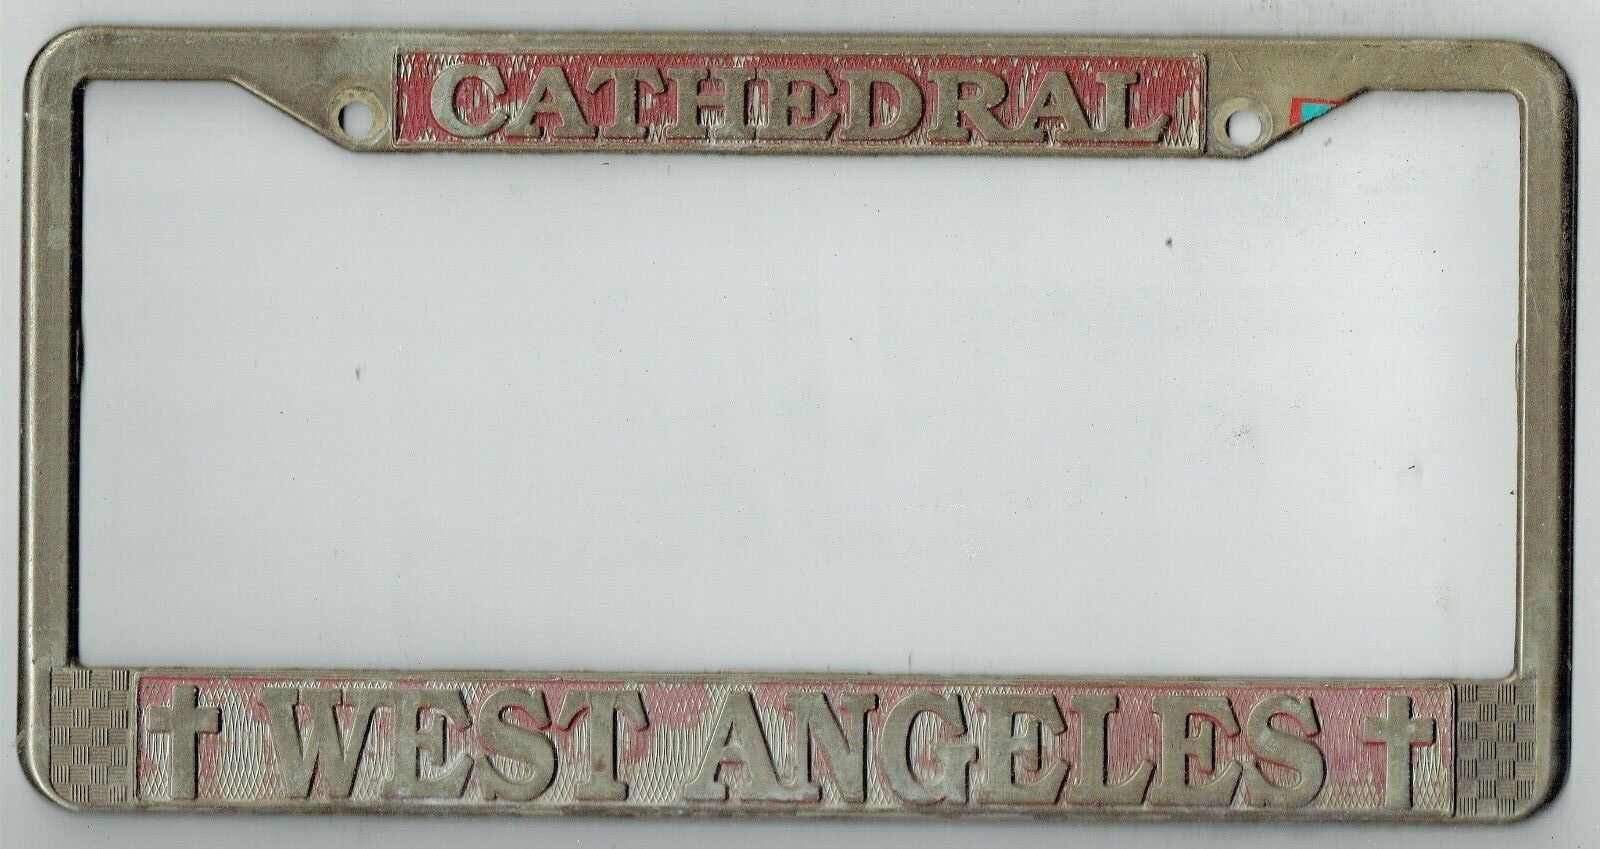 WEST ANGELES CATHEDRAL Church Vintage California License Plate Frame ...